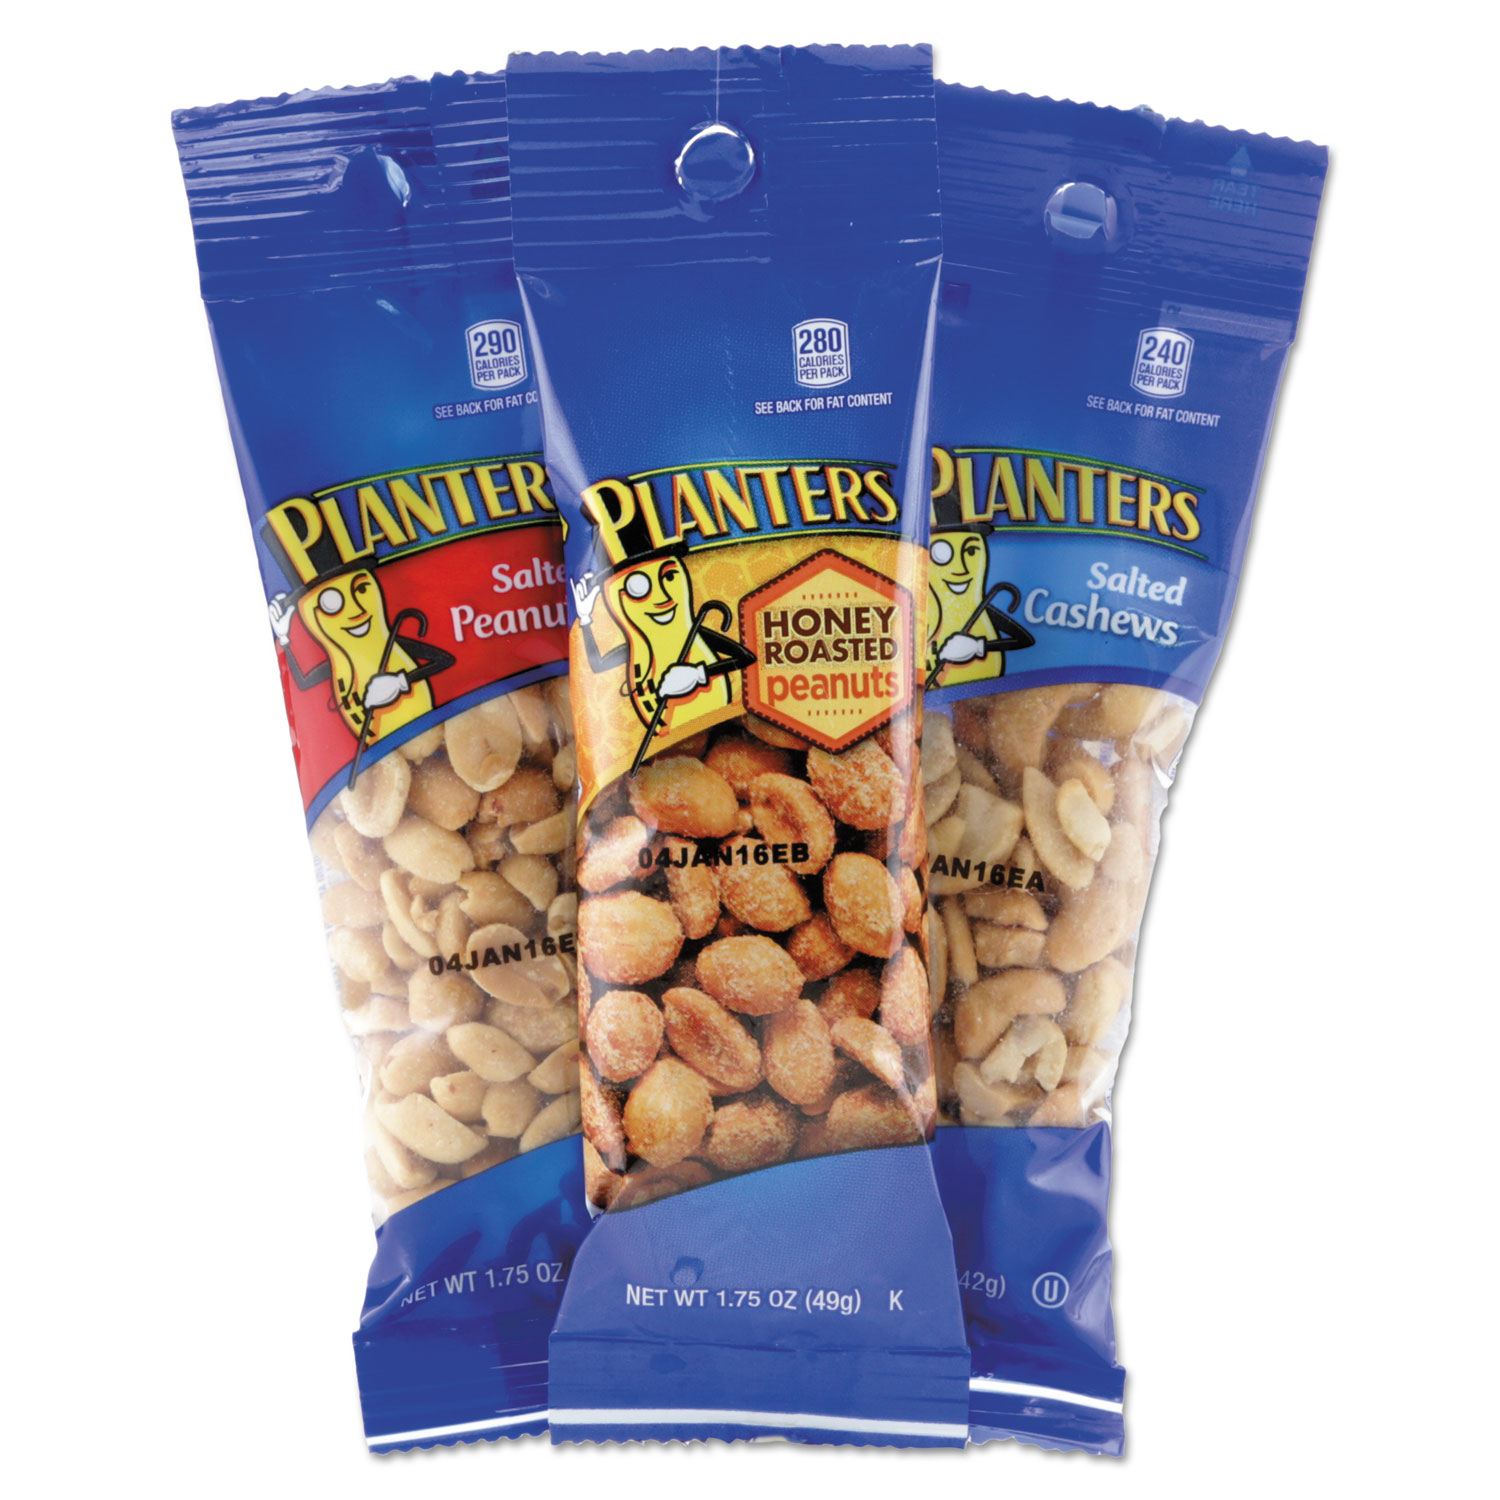 Variety Pack Peanuts & Cashews by Planters® PTN884624 ... on planters honey roasted peanuts, planters peanuts variety, planters peanuts individually wrapped, blue diamond nuts pack, planters nutrition pack, planters heat peanuts, peanut planter pack,